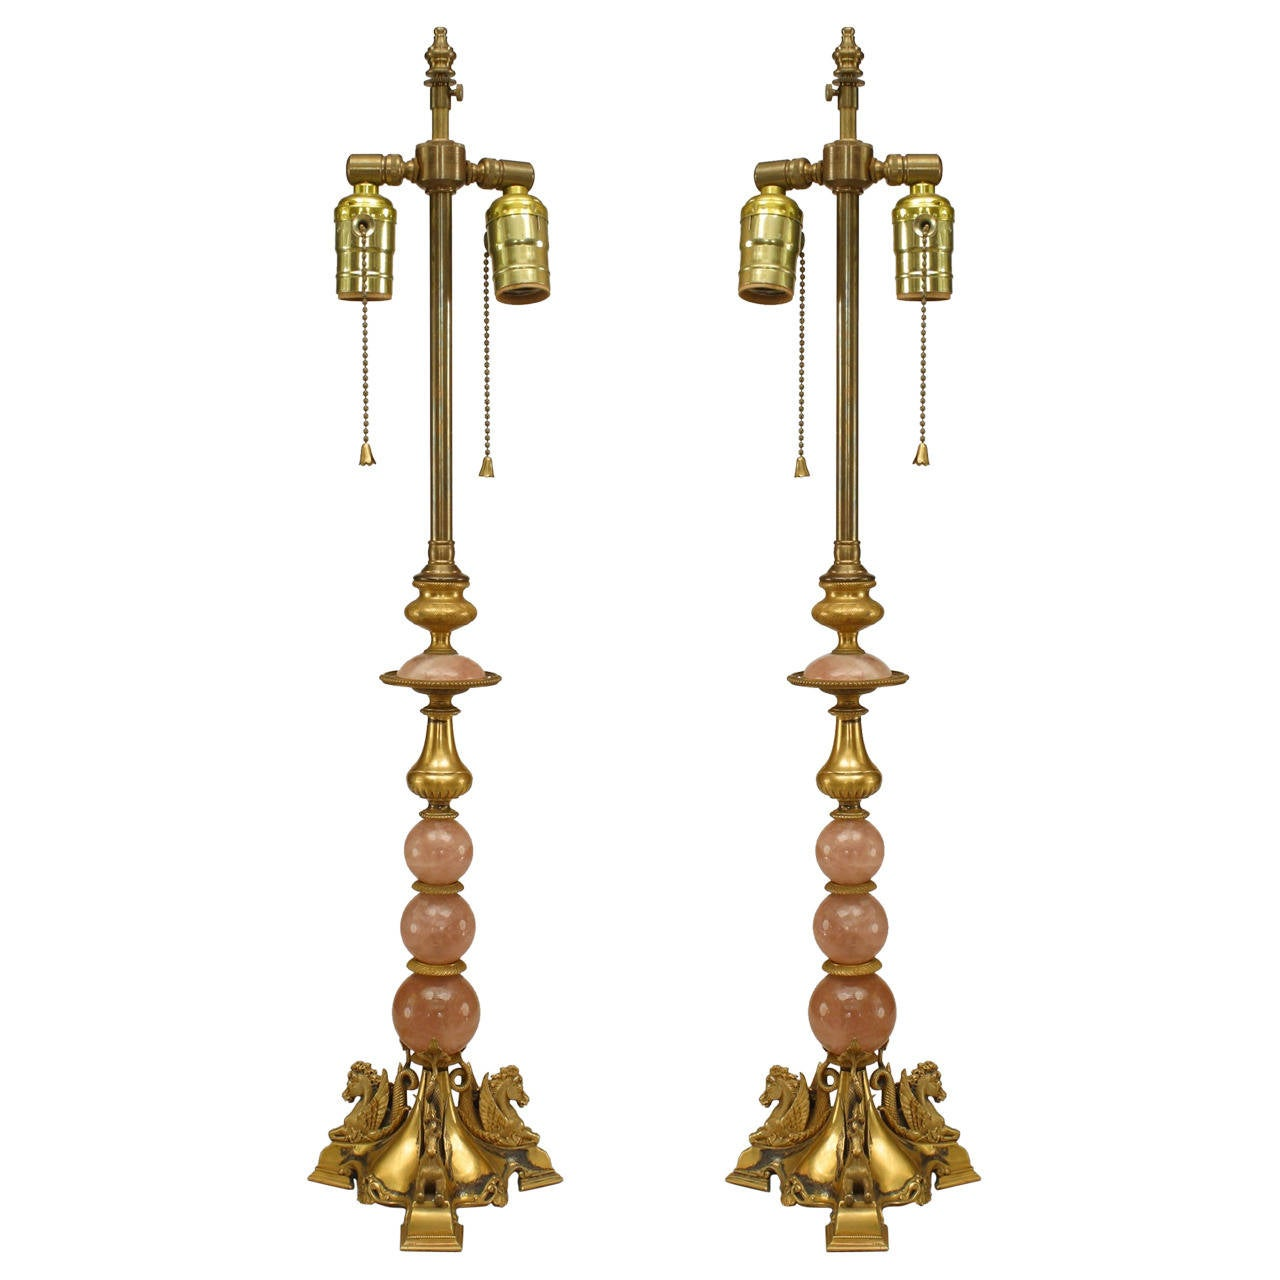 Pair of French Rose Quartz and Ormolu Table Lamps